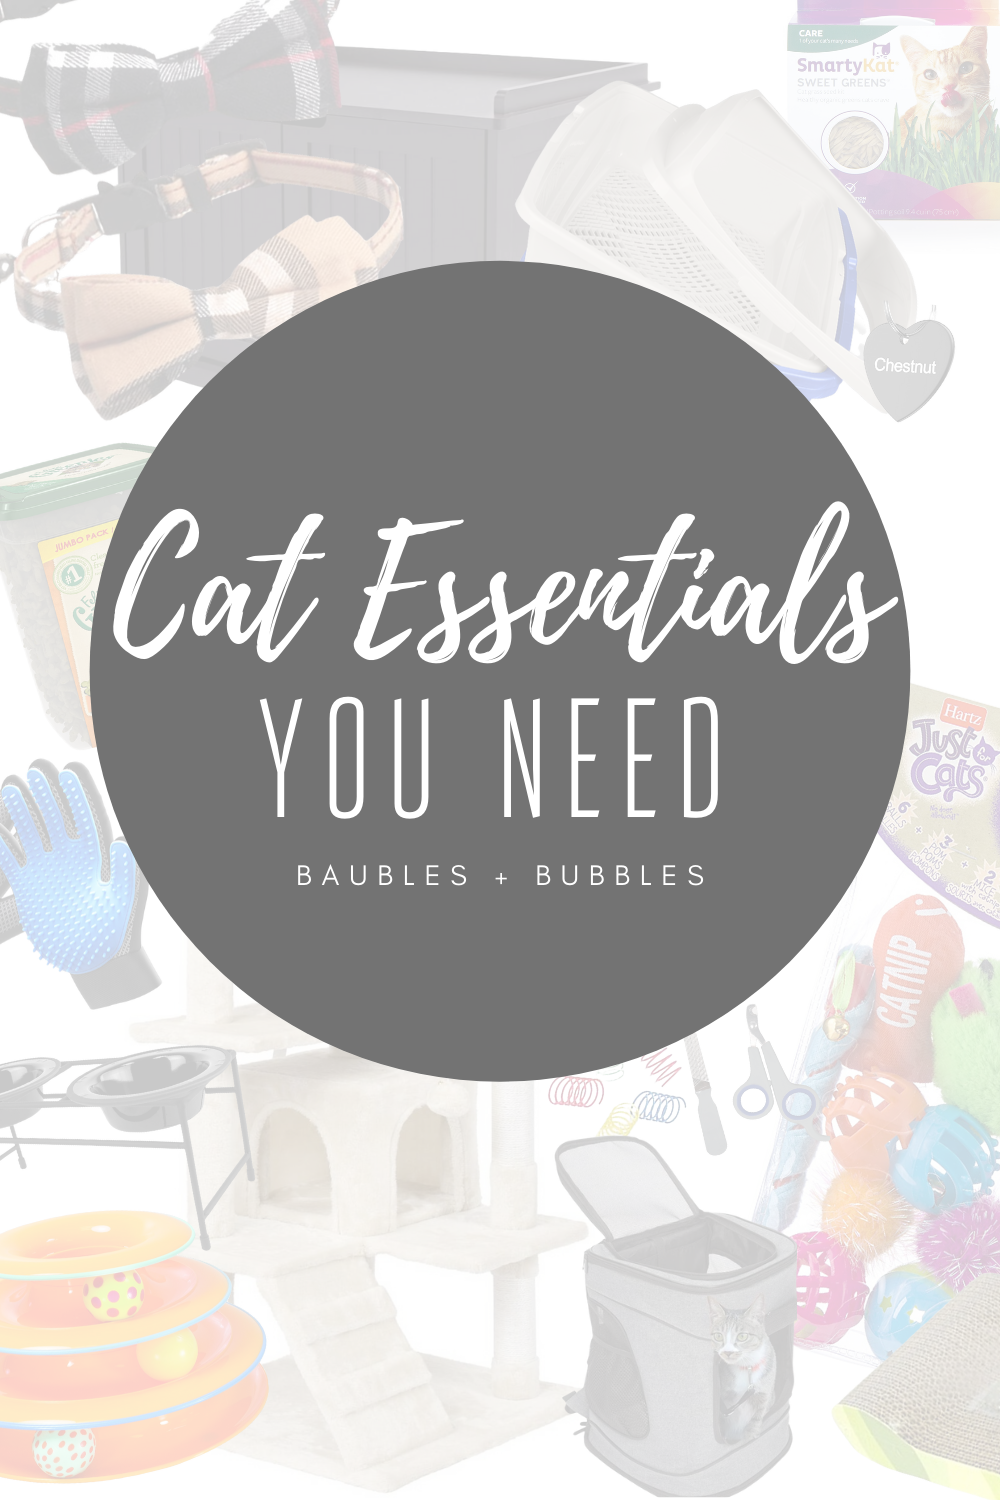 Cat Essentials | Baubles & Bubbles Blog